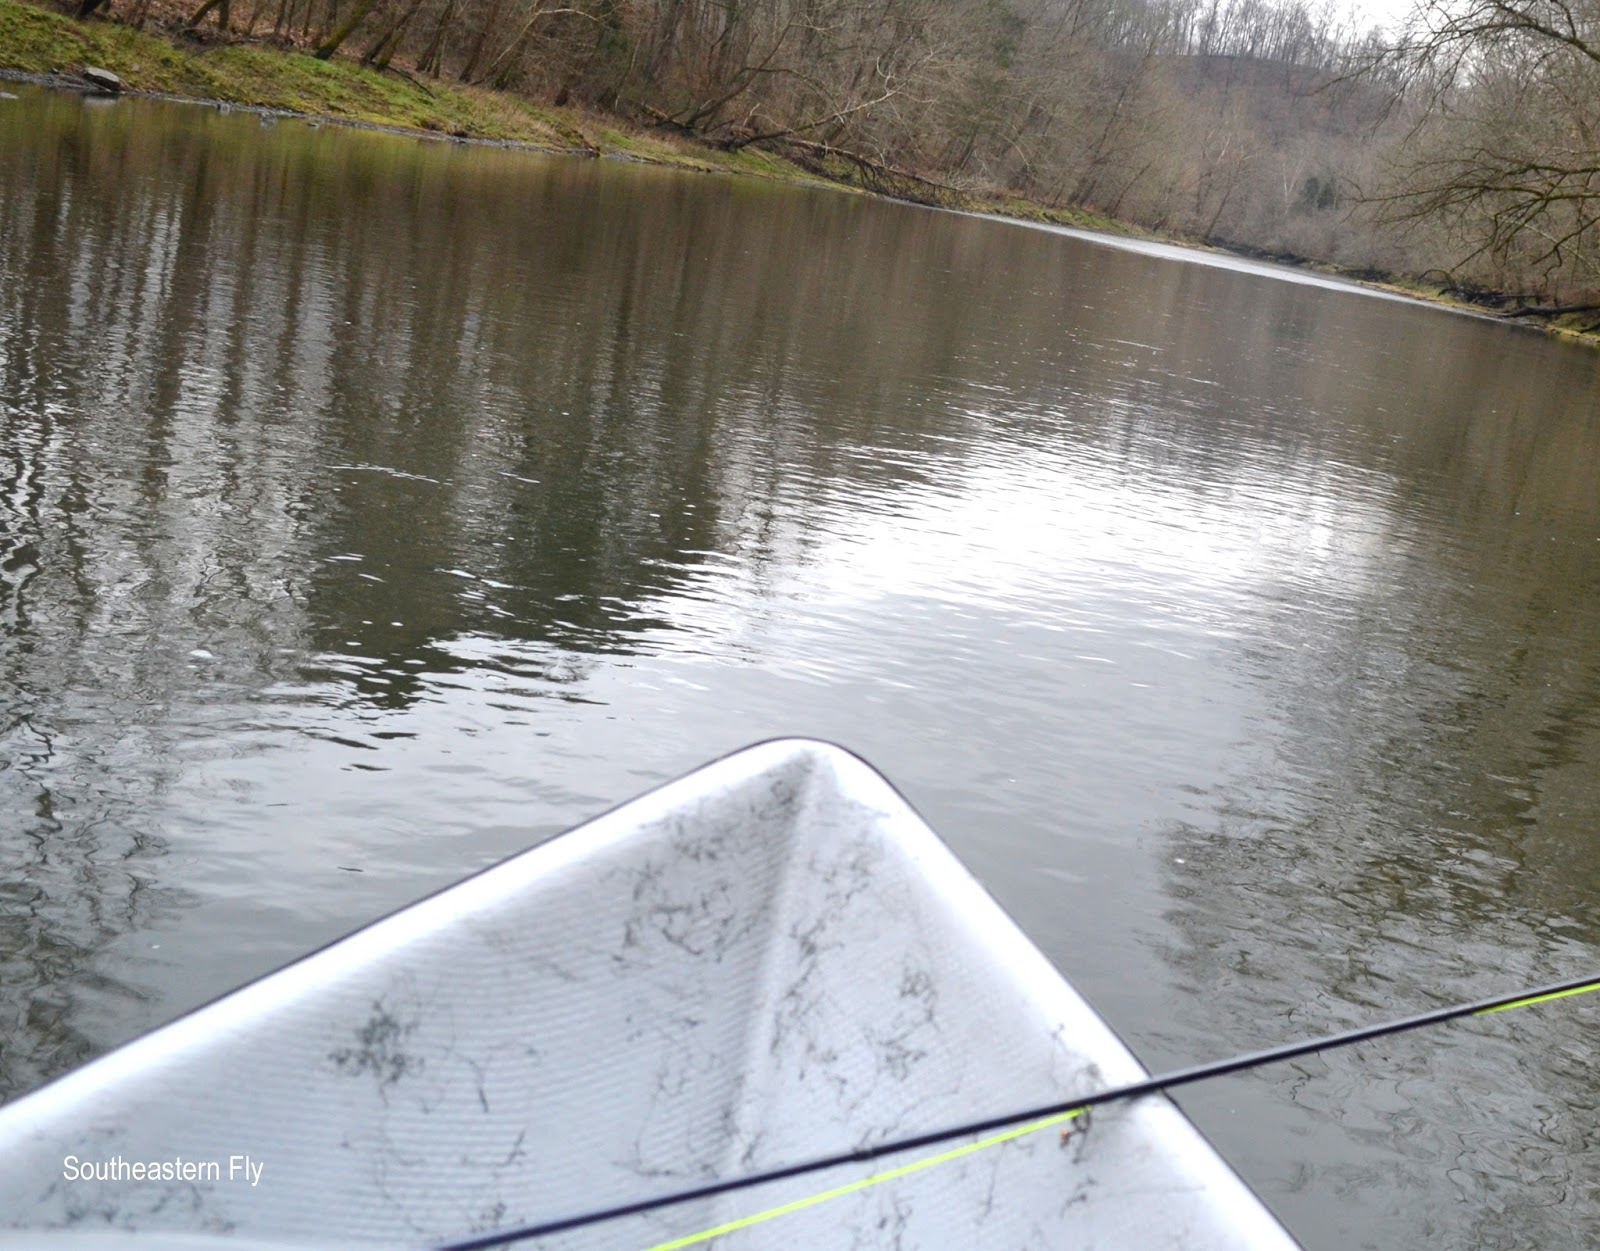 Southeastern fly caney fork river fishing report for Tims ford lake fishing report